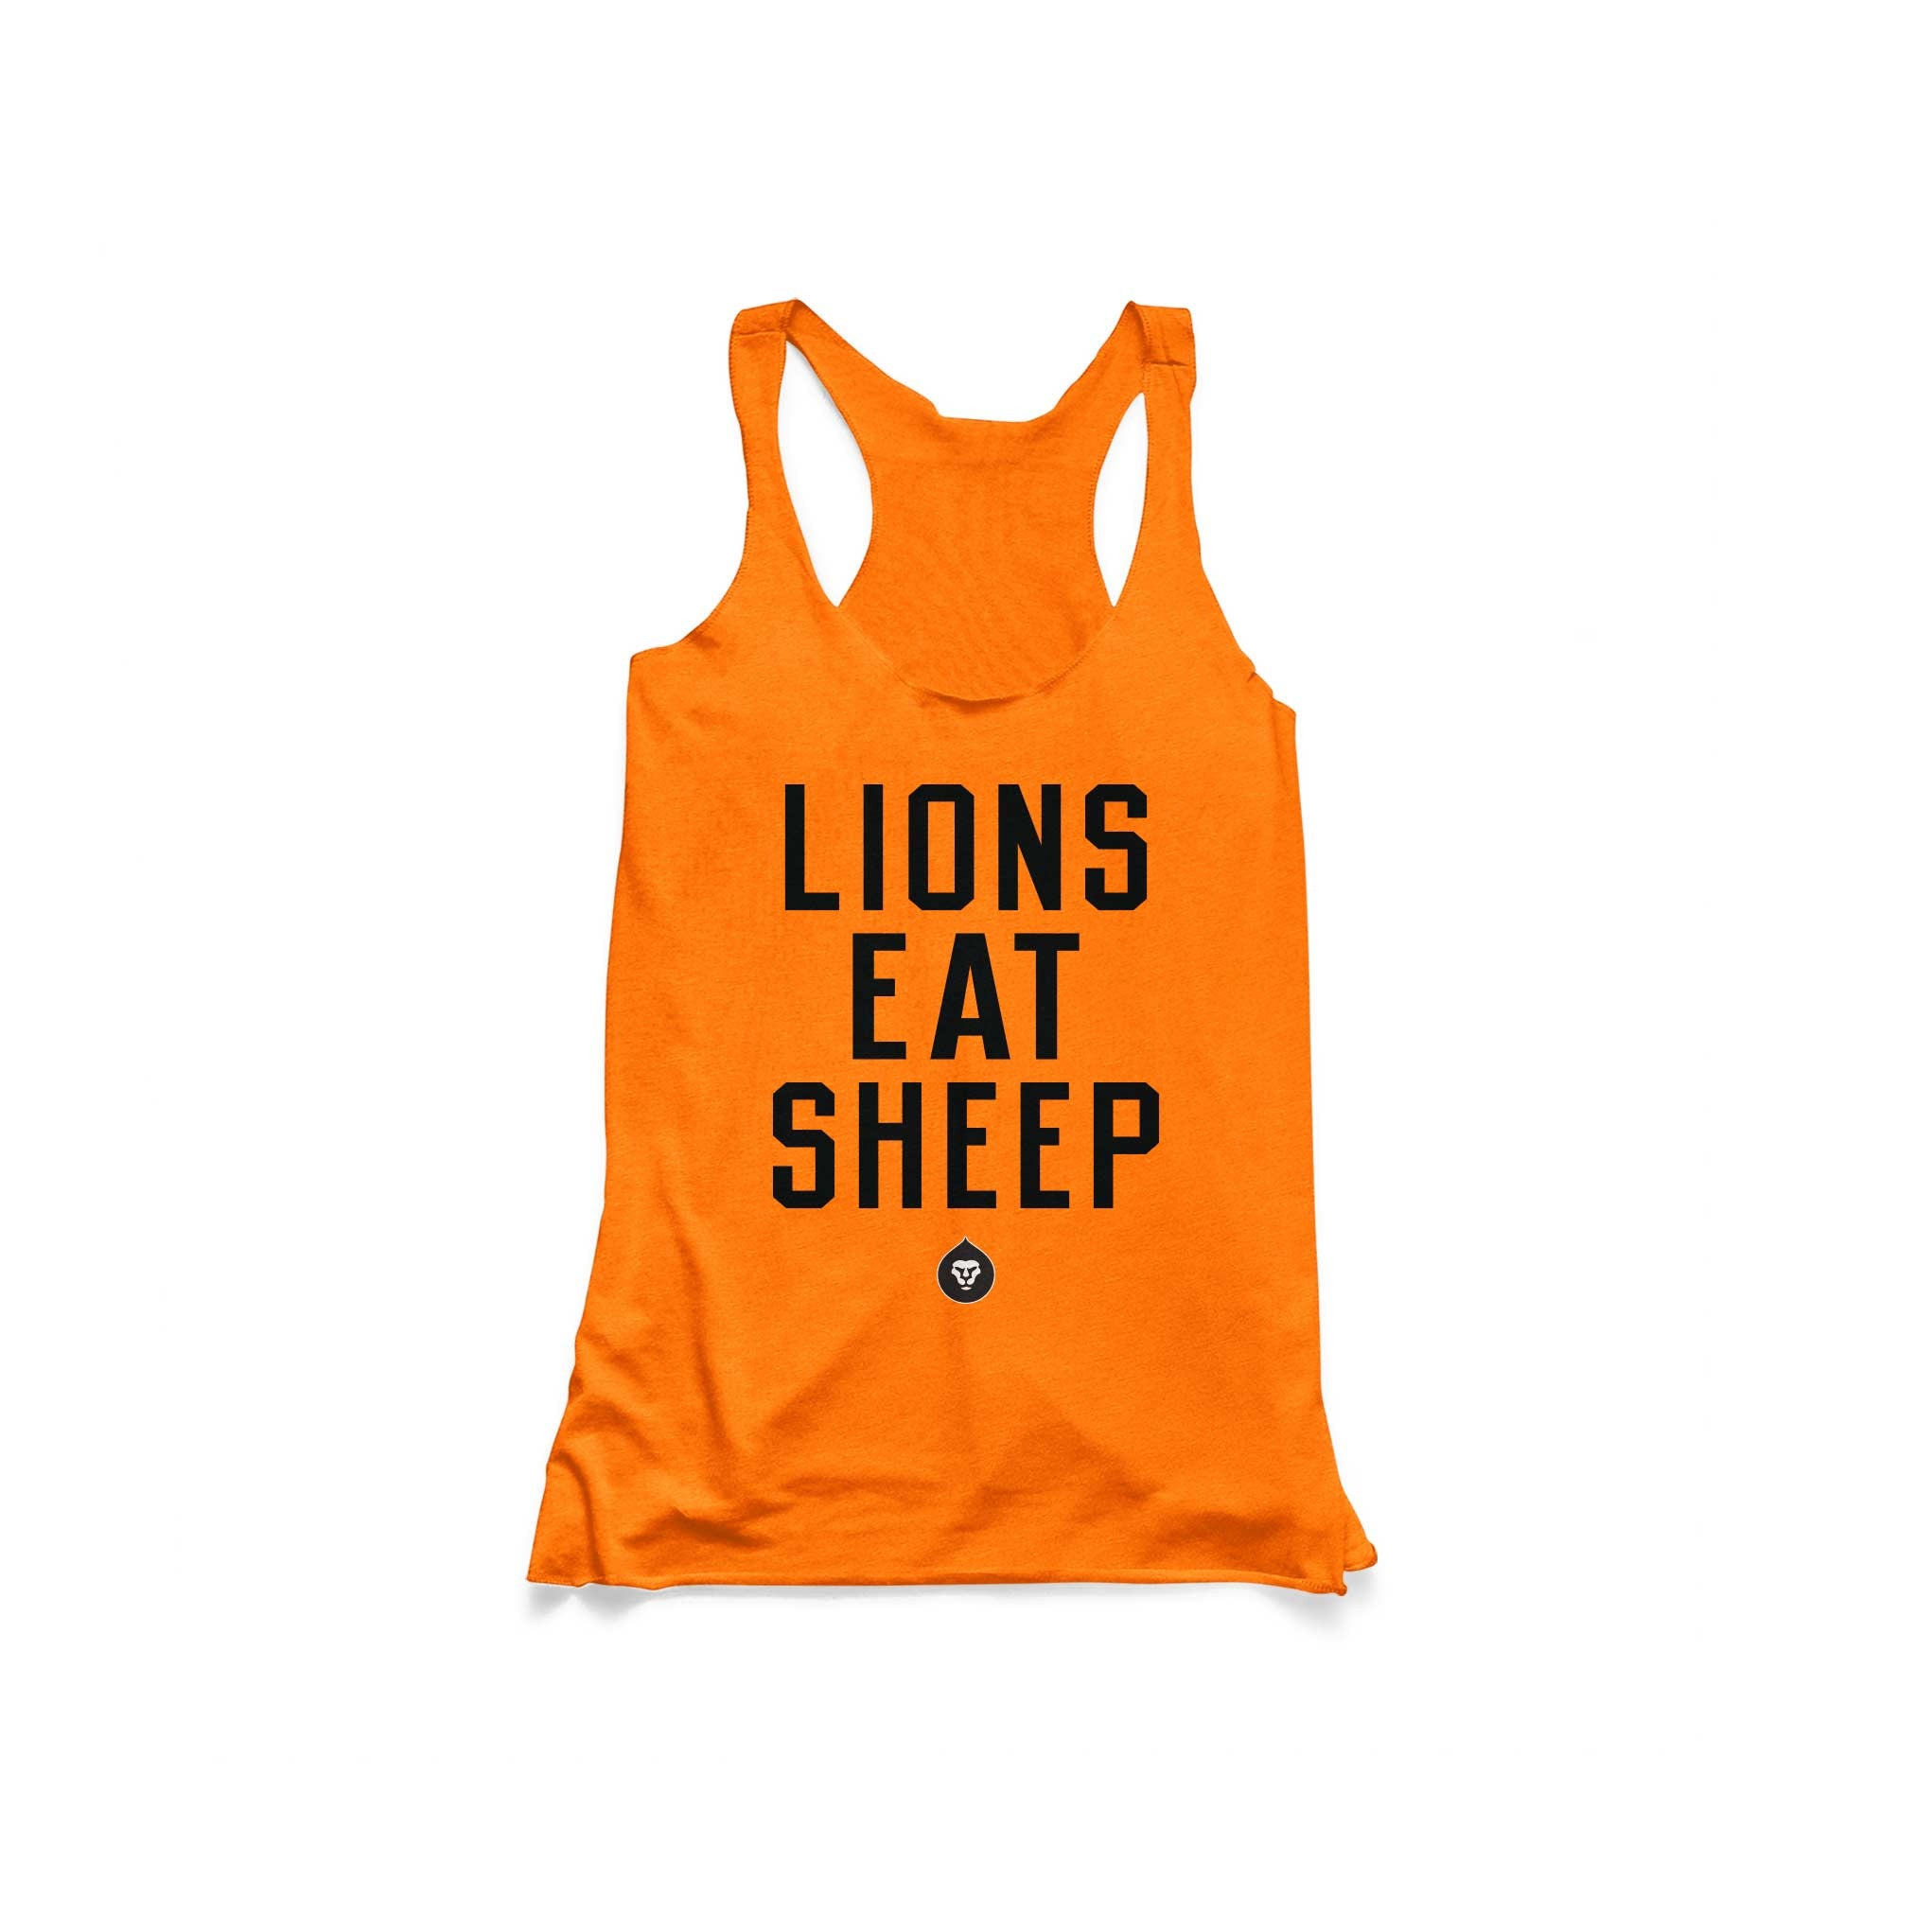 LADIES LIONS EAT SHEEP TANK